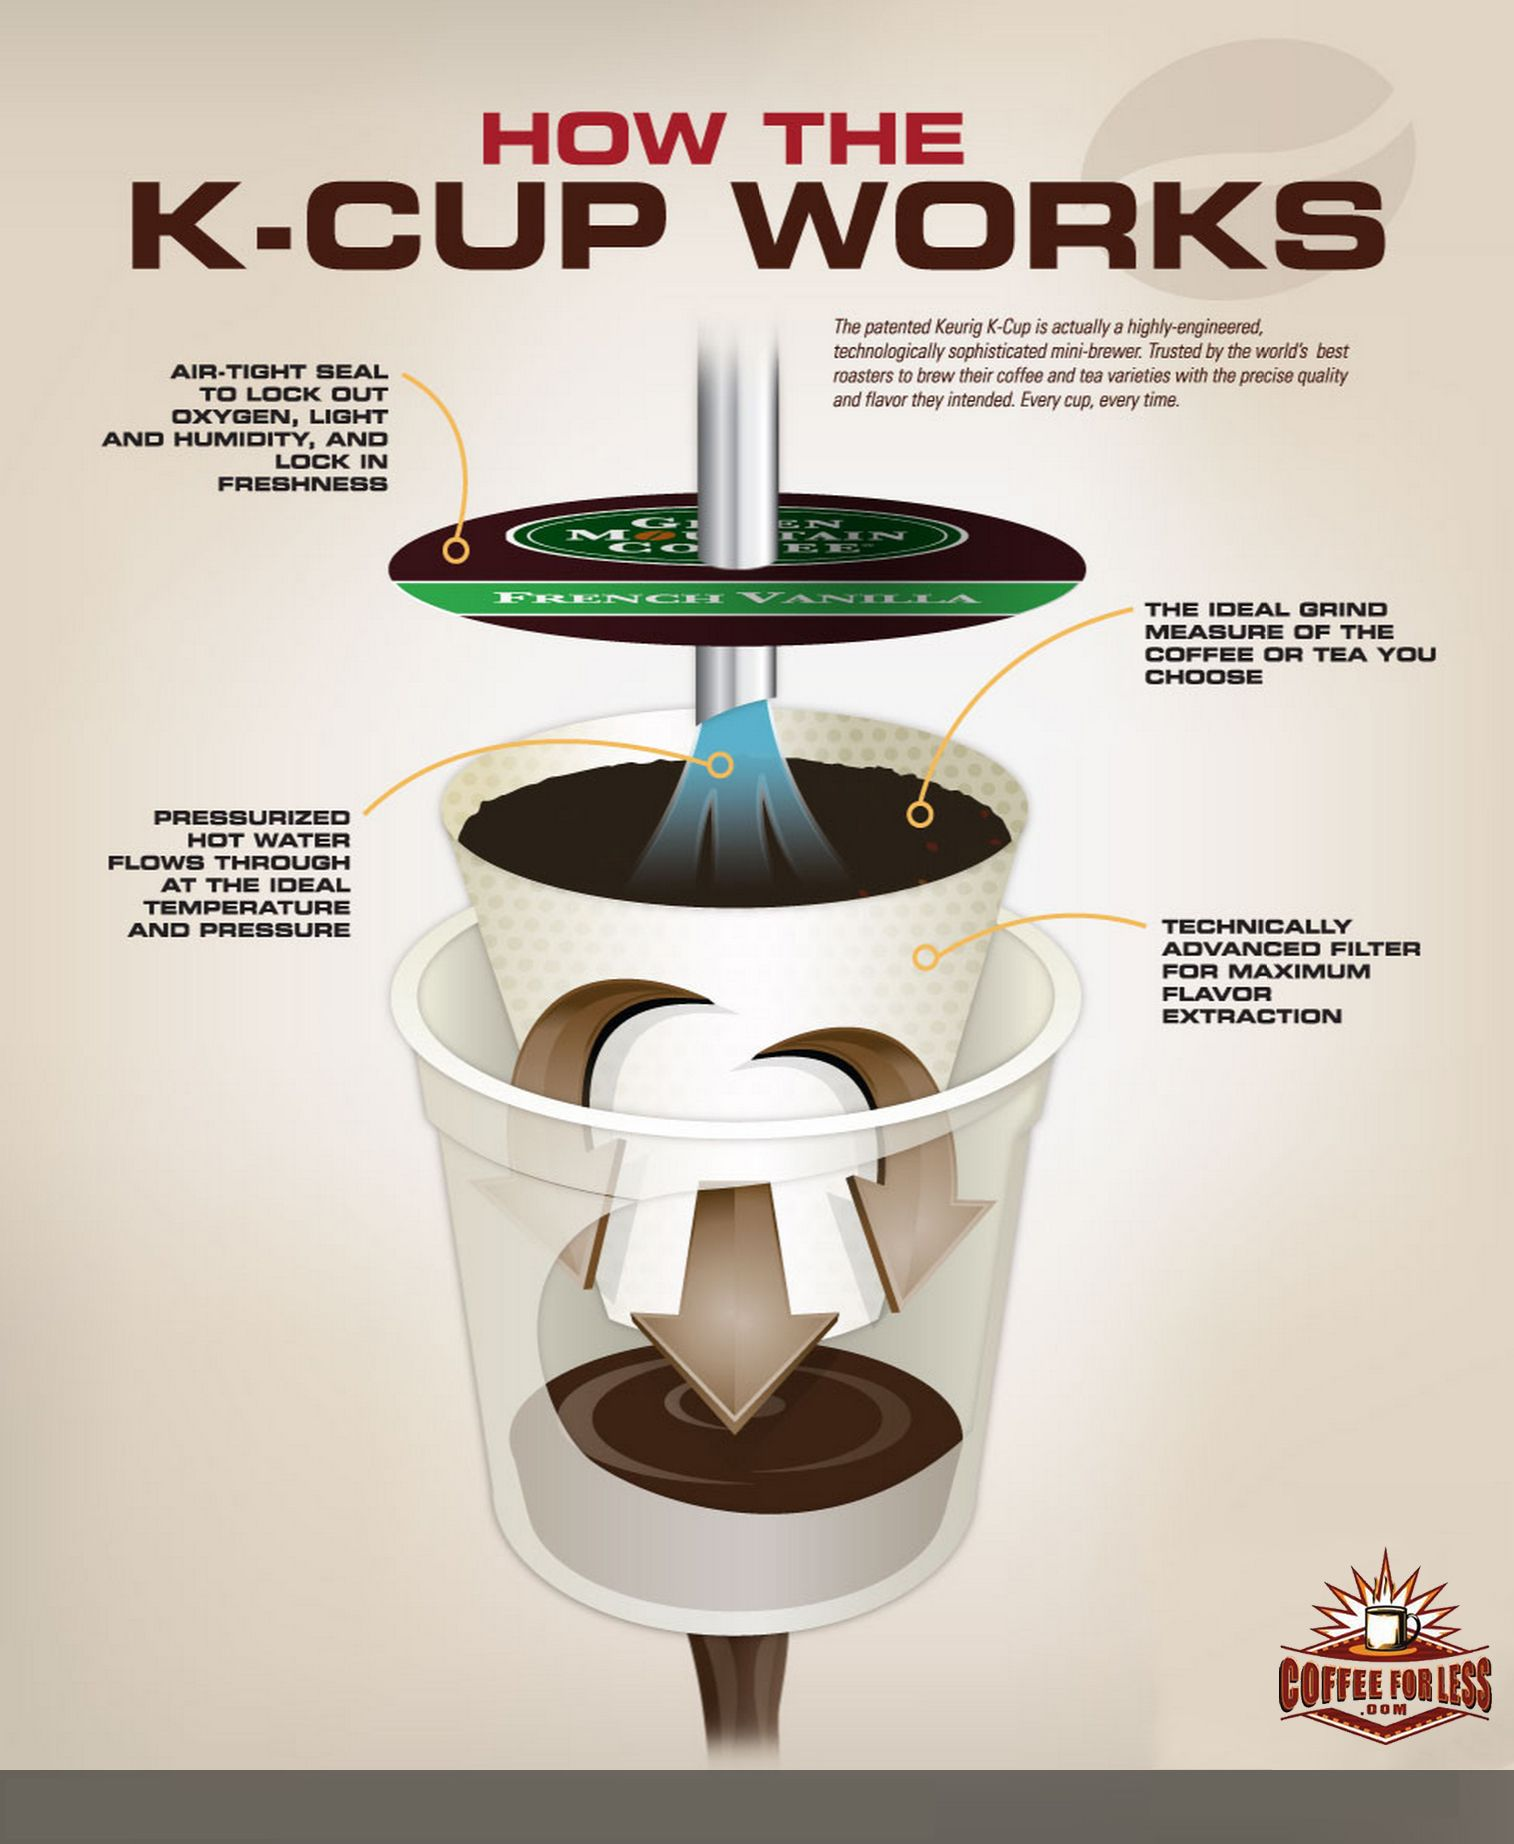 How the Kcup works! Thanks to our friends at